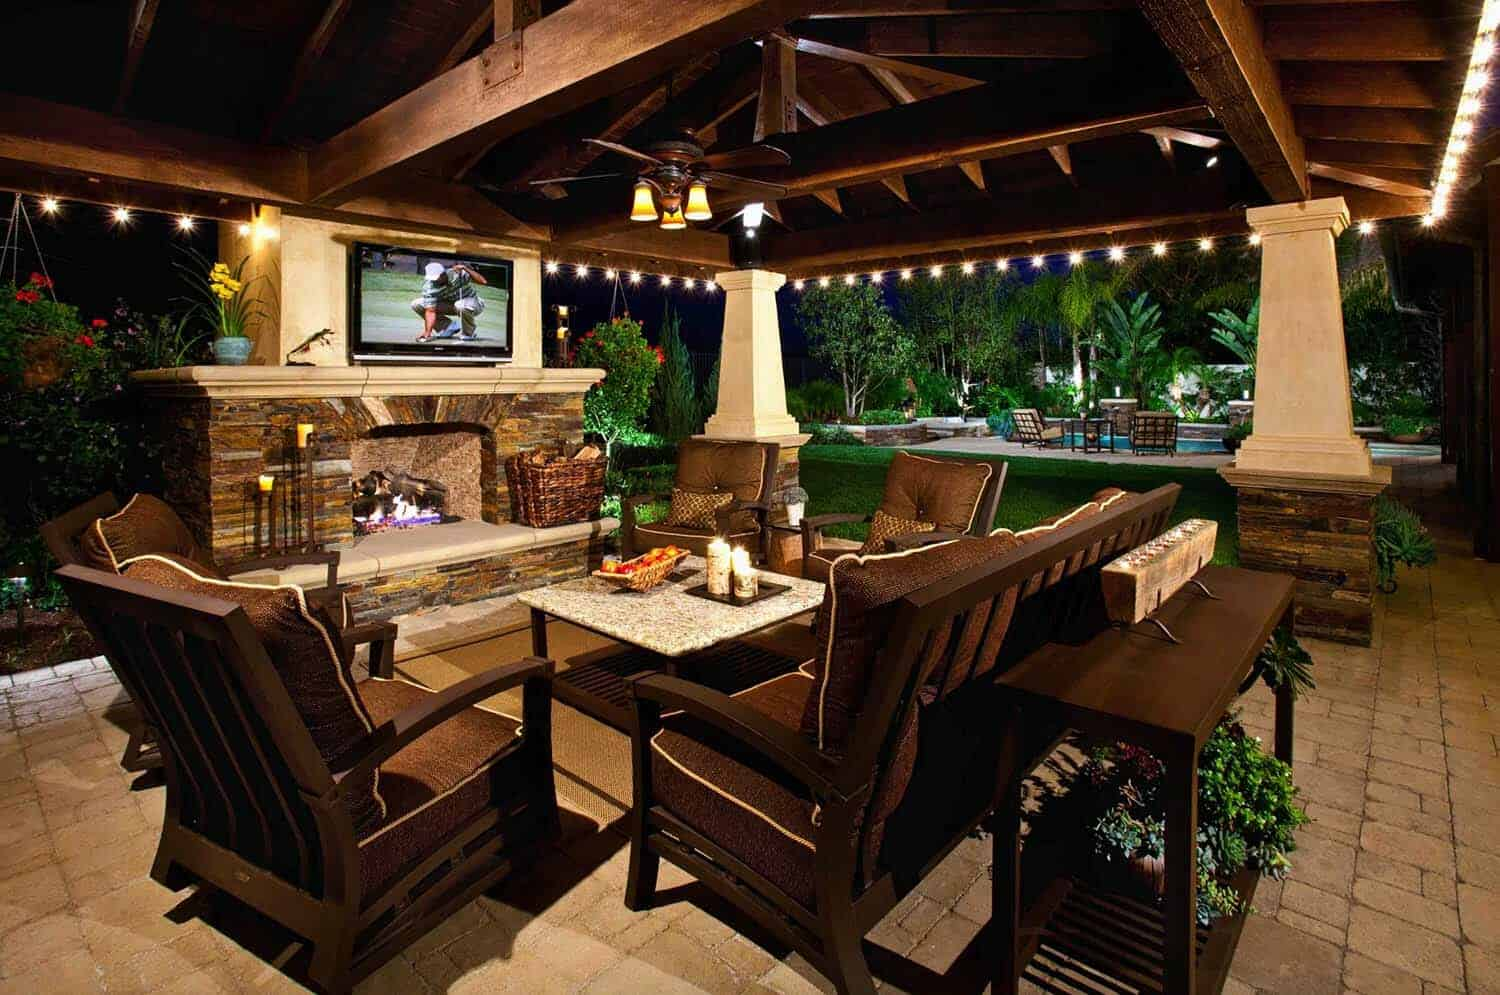 25+ Fabulous outdoor patio ideas to get ready for spring ... on Backyard Outdoor Living Spaces id=36485